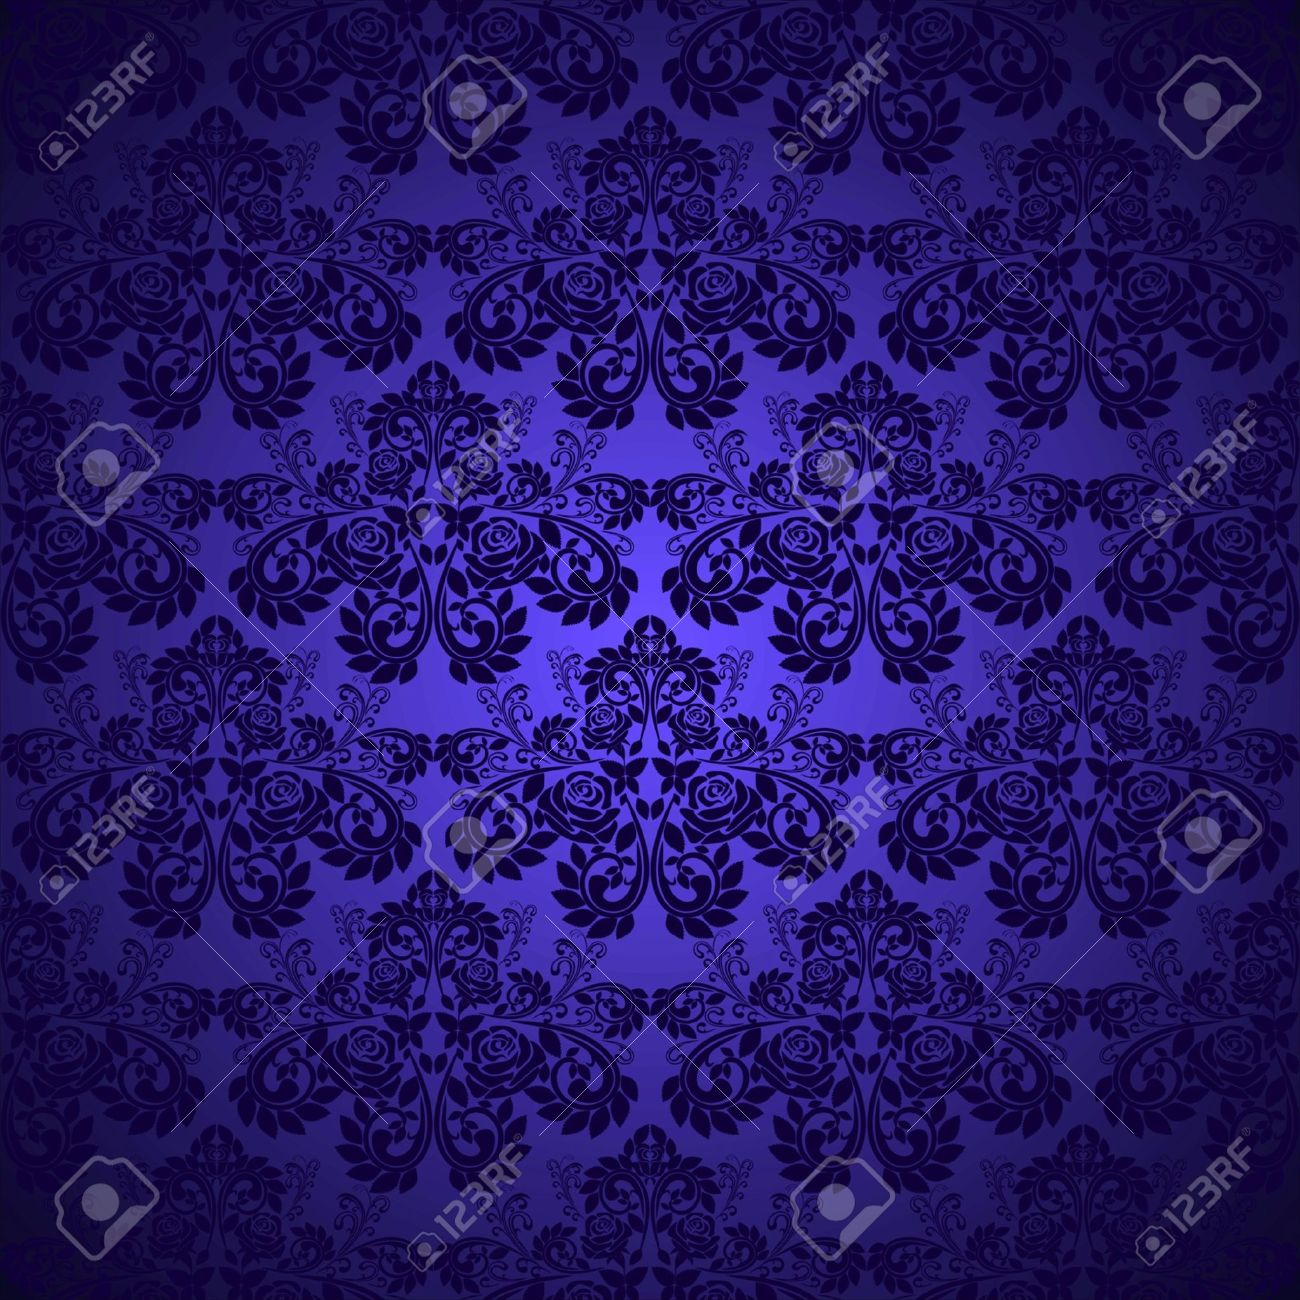 Dark blue wallpaper - pattern with roses Stock Vector - 12964238